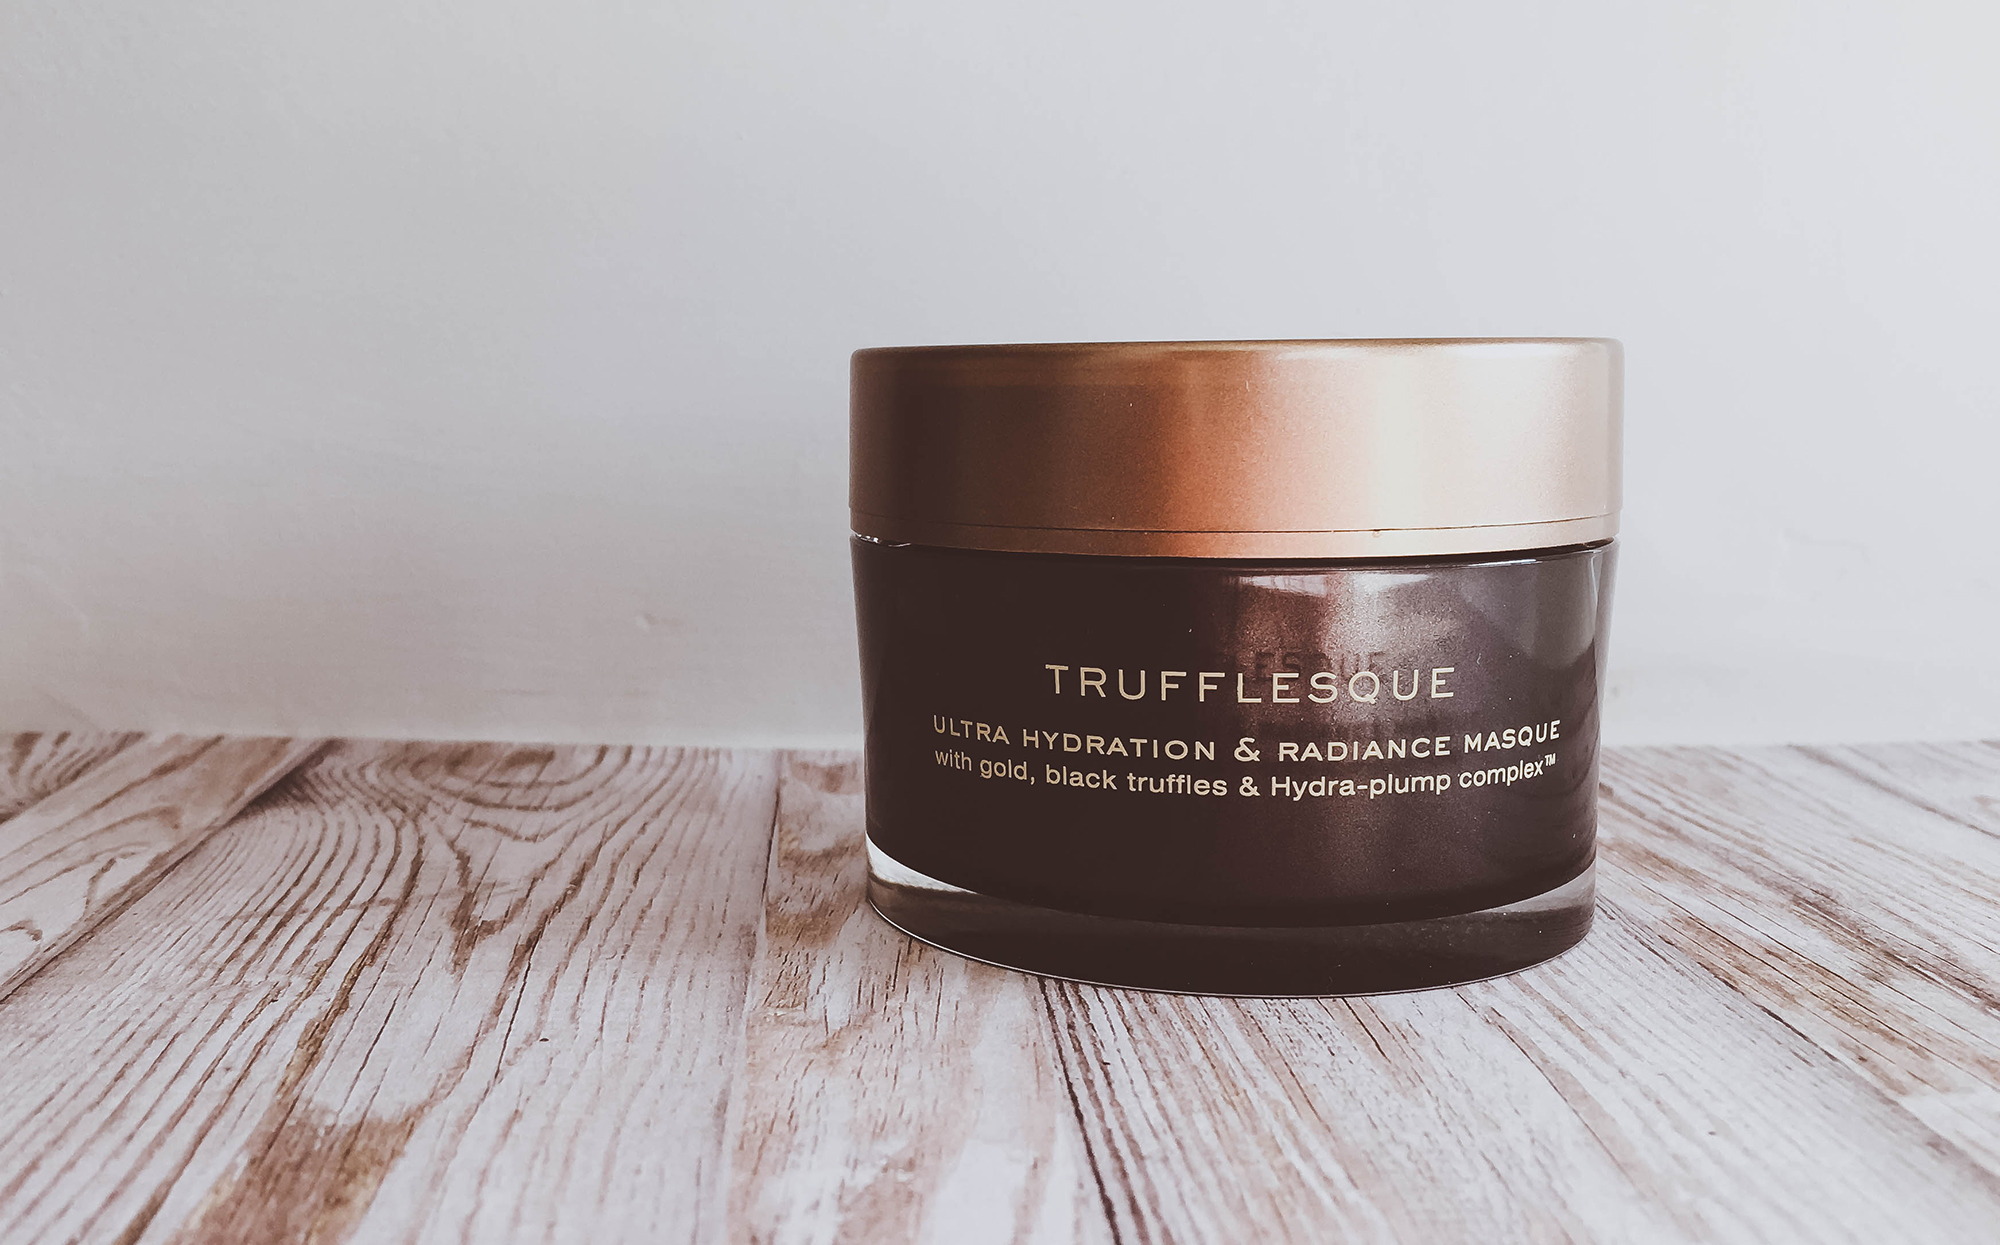 Temple Spa's  Trufflesque Ultra Hydration & Radiance Masque